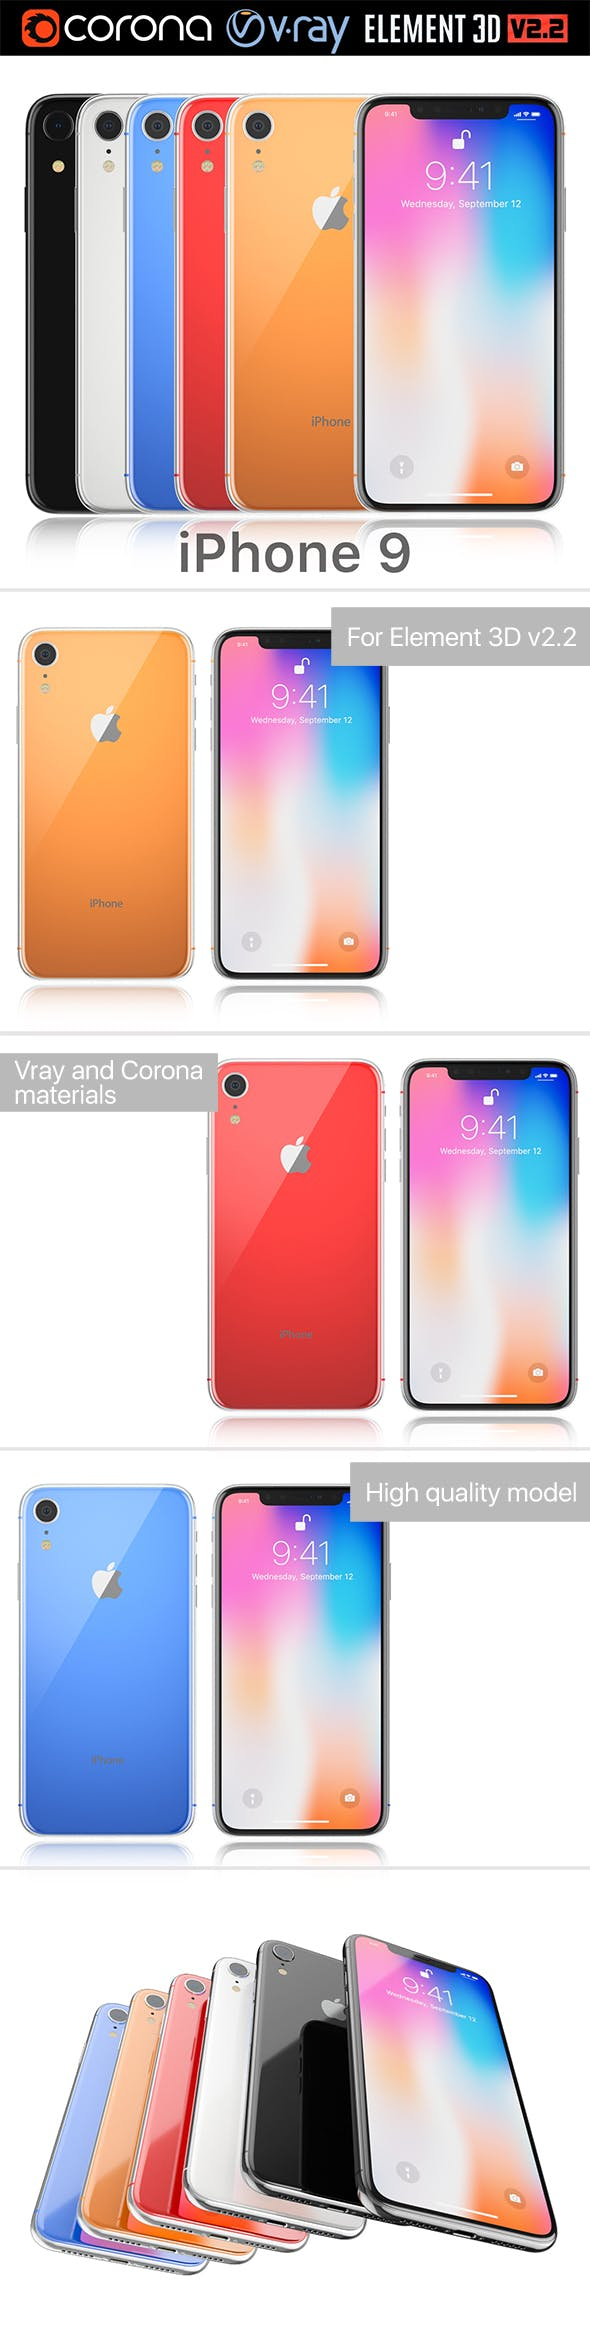 Apple iPhone 9 all colors - 3DOcean Item for Sale